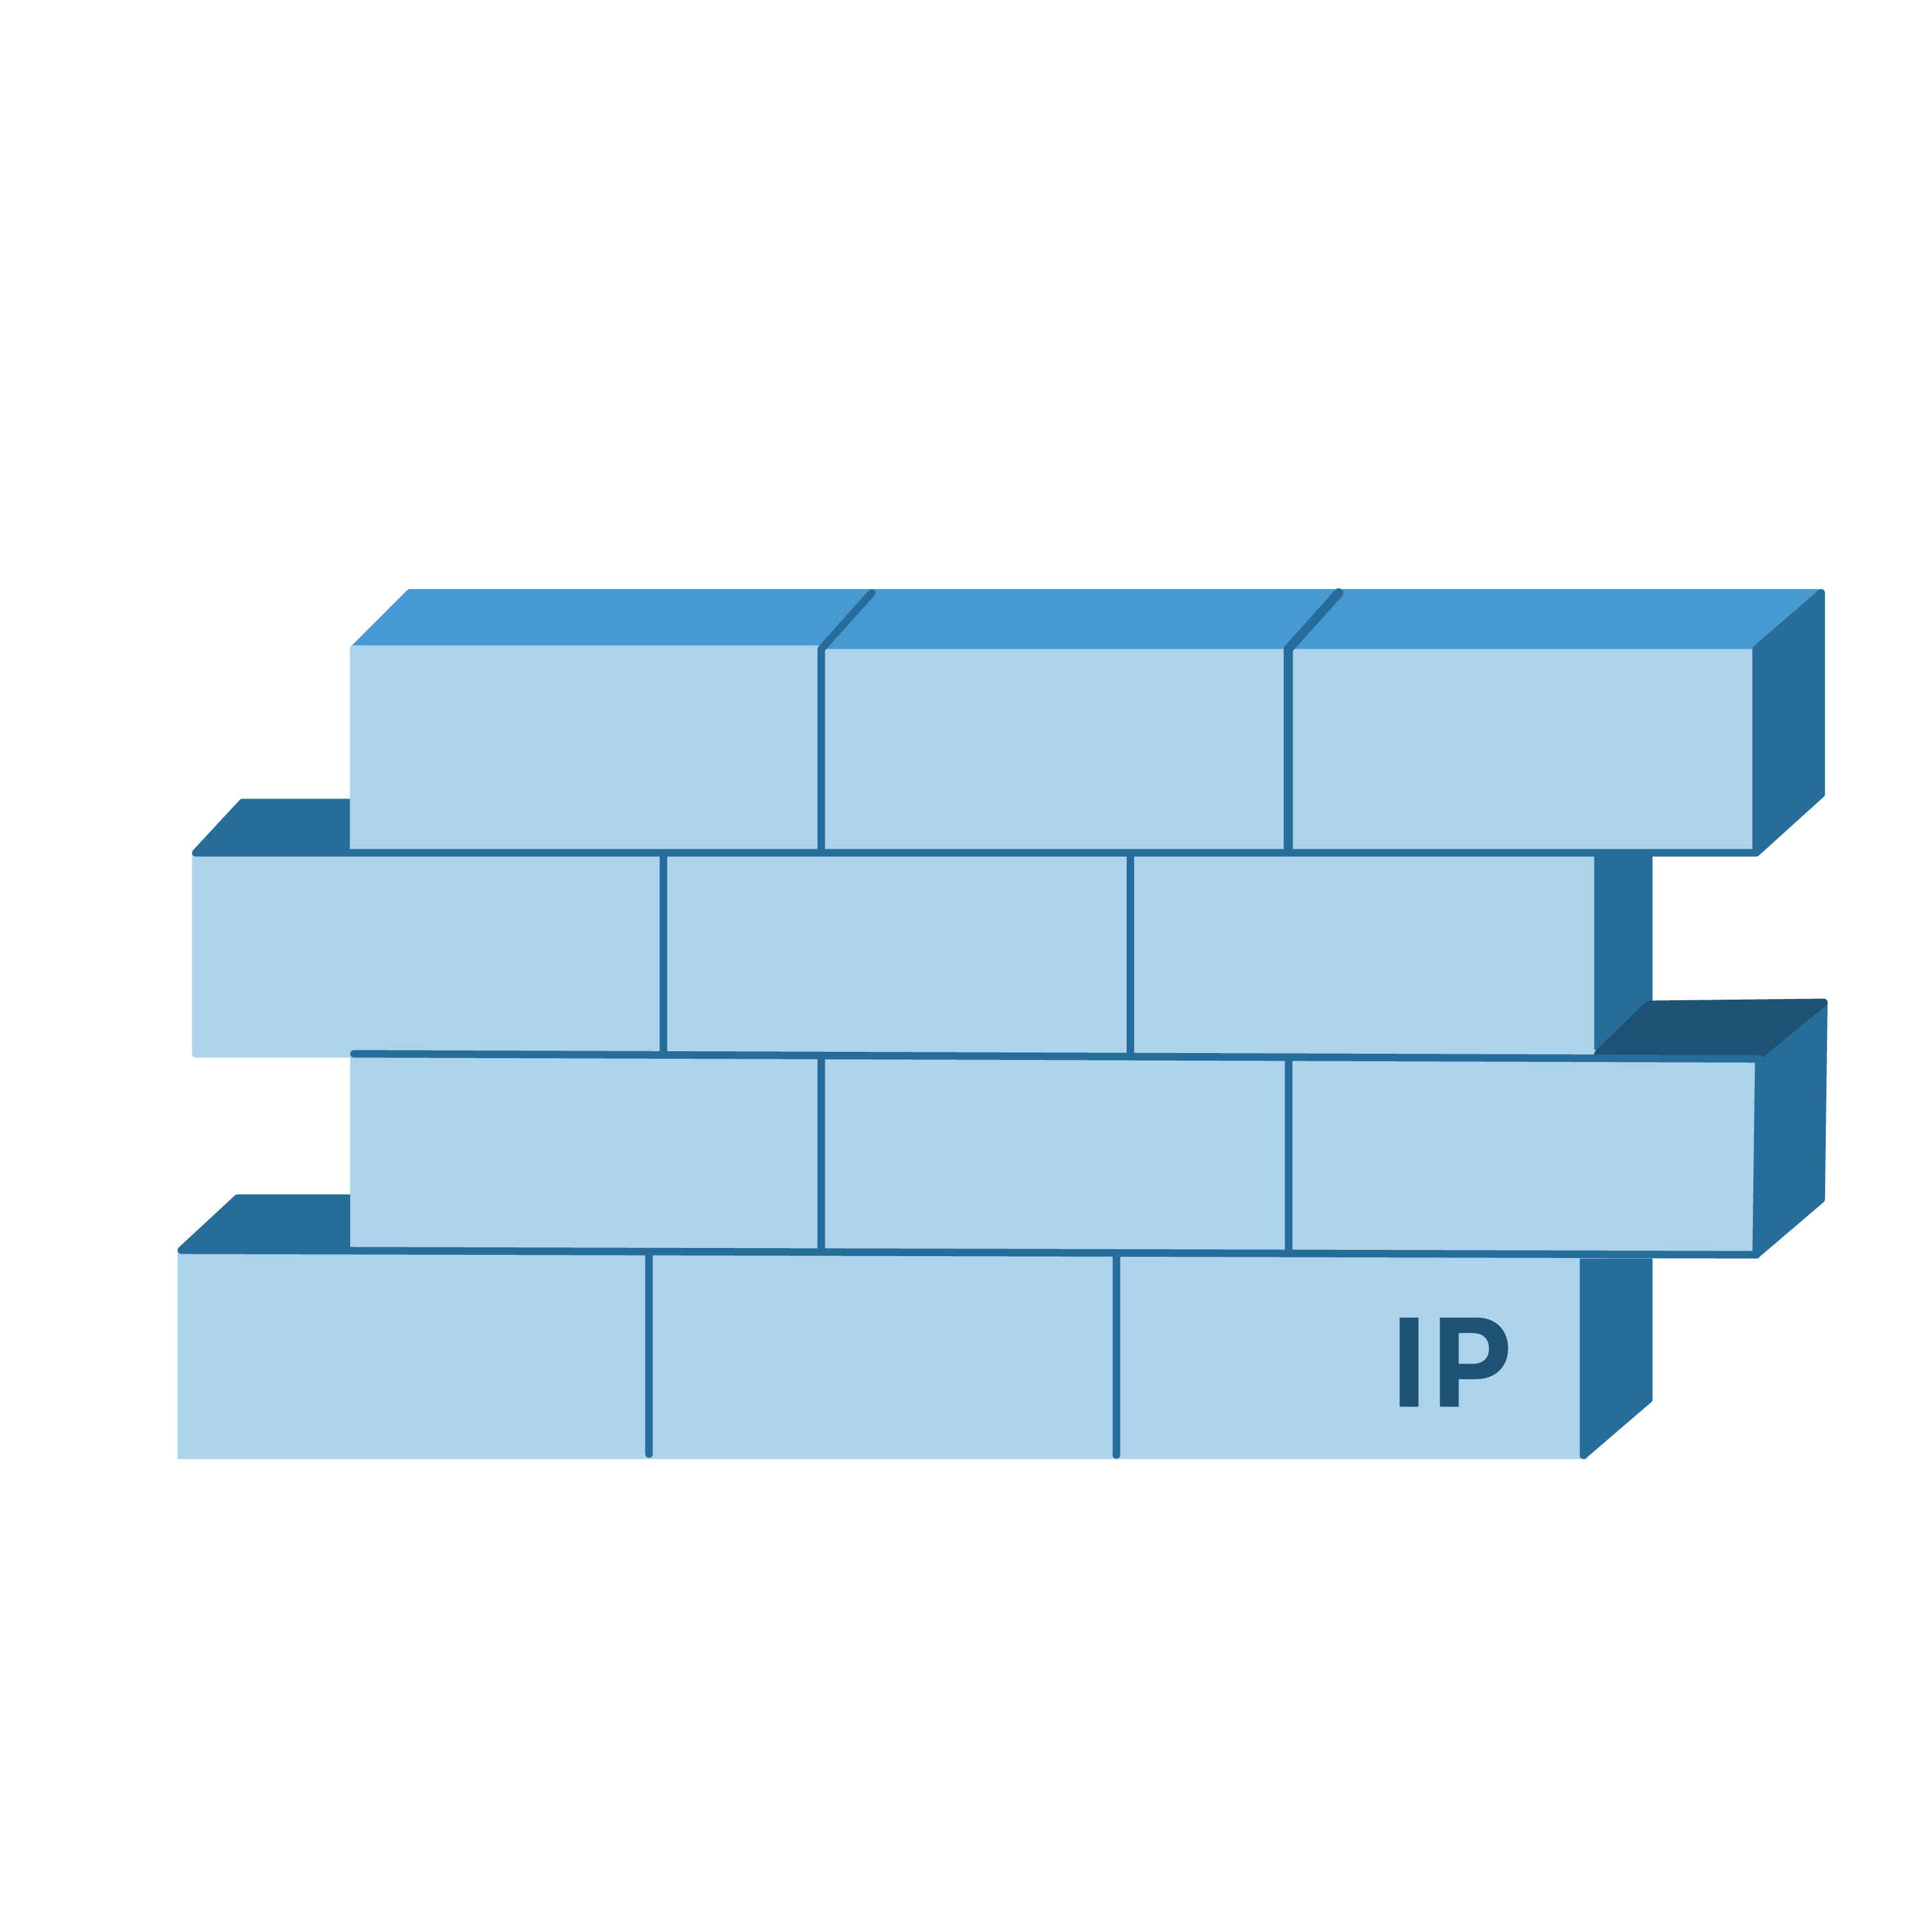 IP Firewall Illustration 3x